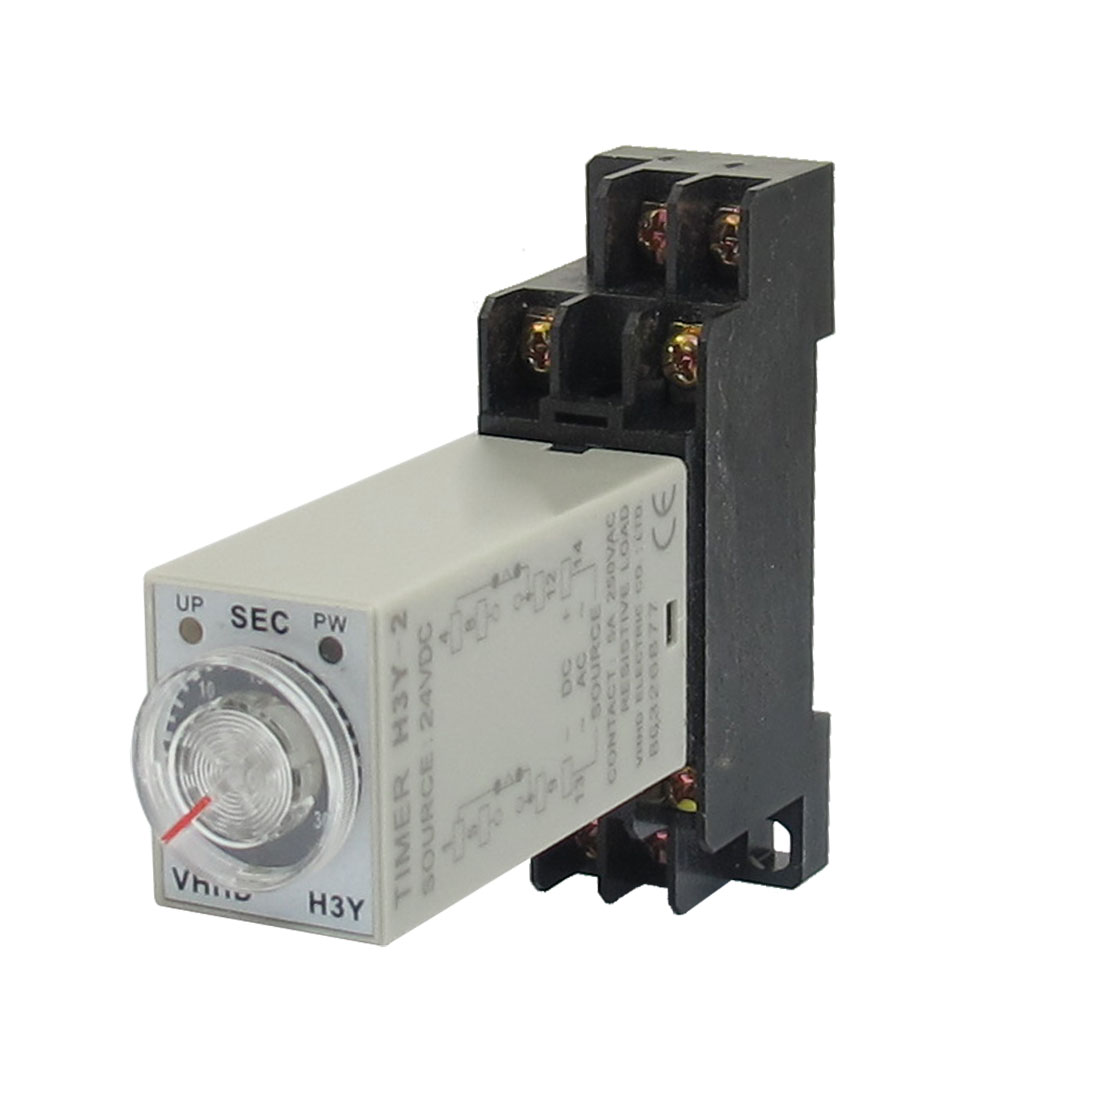 DC 24V H3Y-2 0-30S DPDT 8 Pins Power on Time Delay Relay w Socket